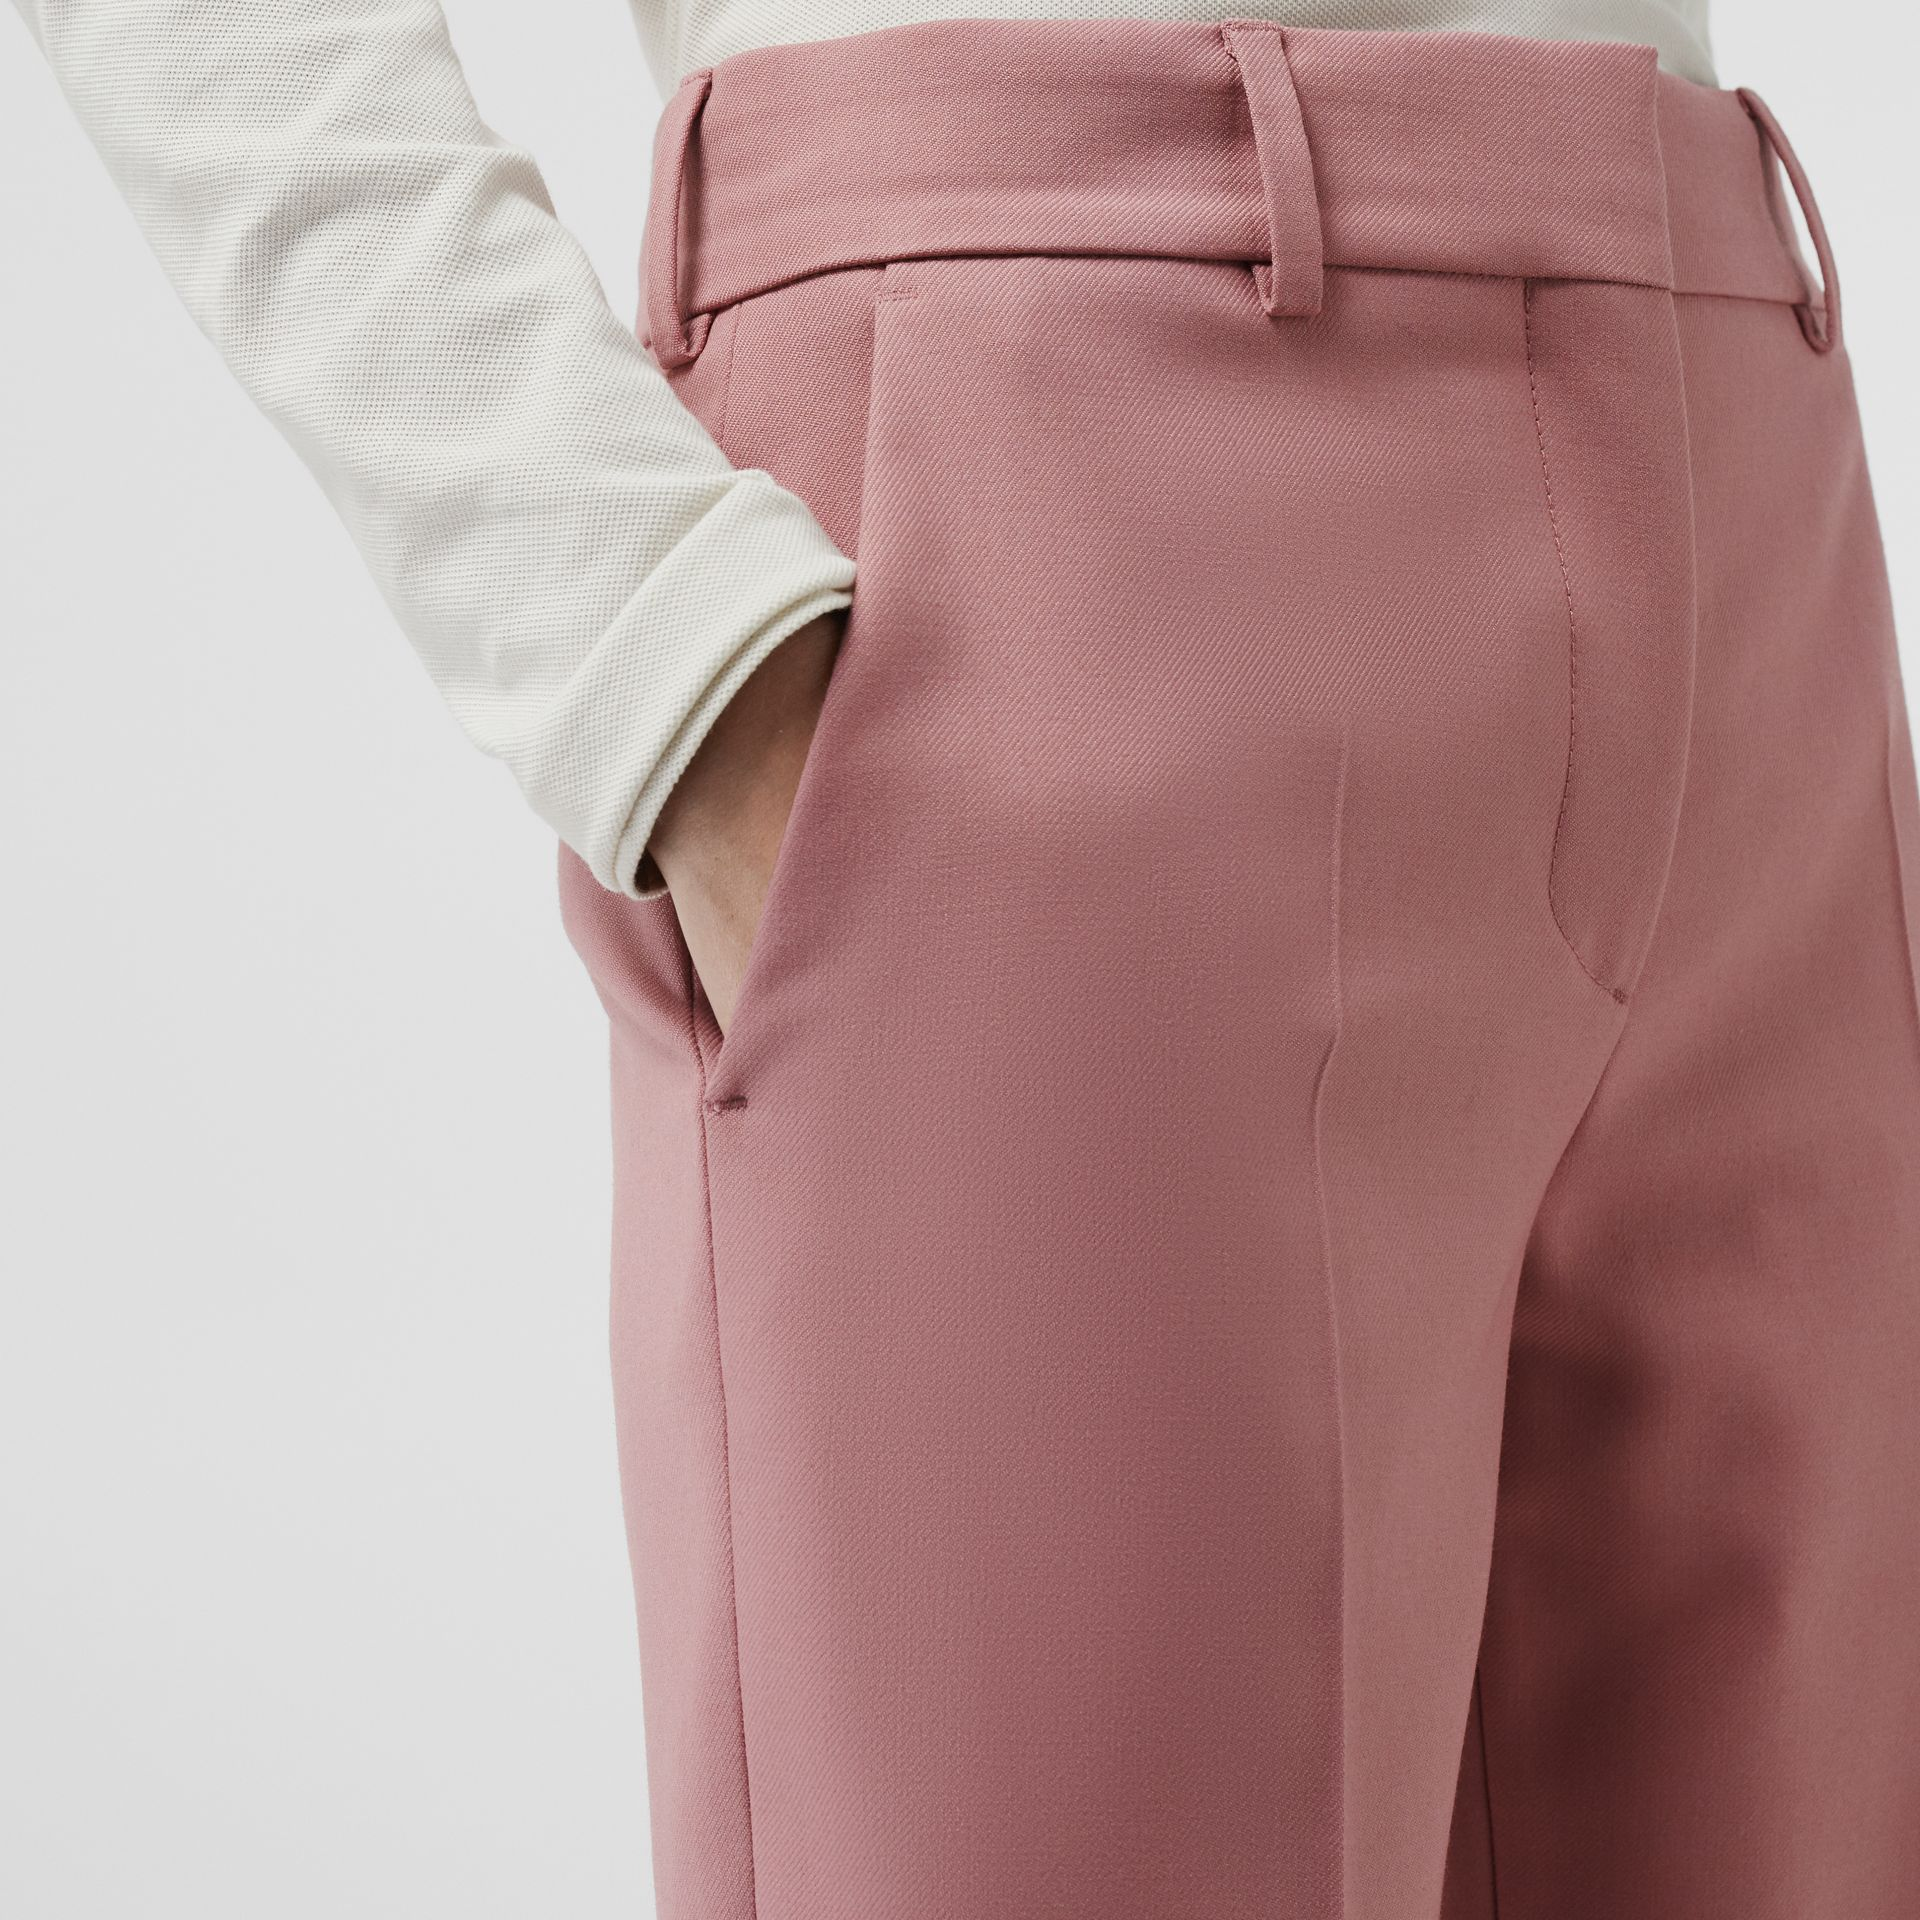 Straight Fit Wool Blend Tailored Trousers in Chalk Pink - Women | Burberry Canada - gallery image 1